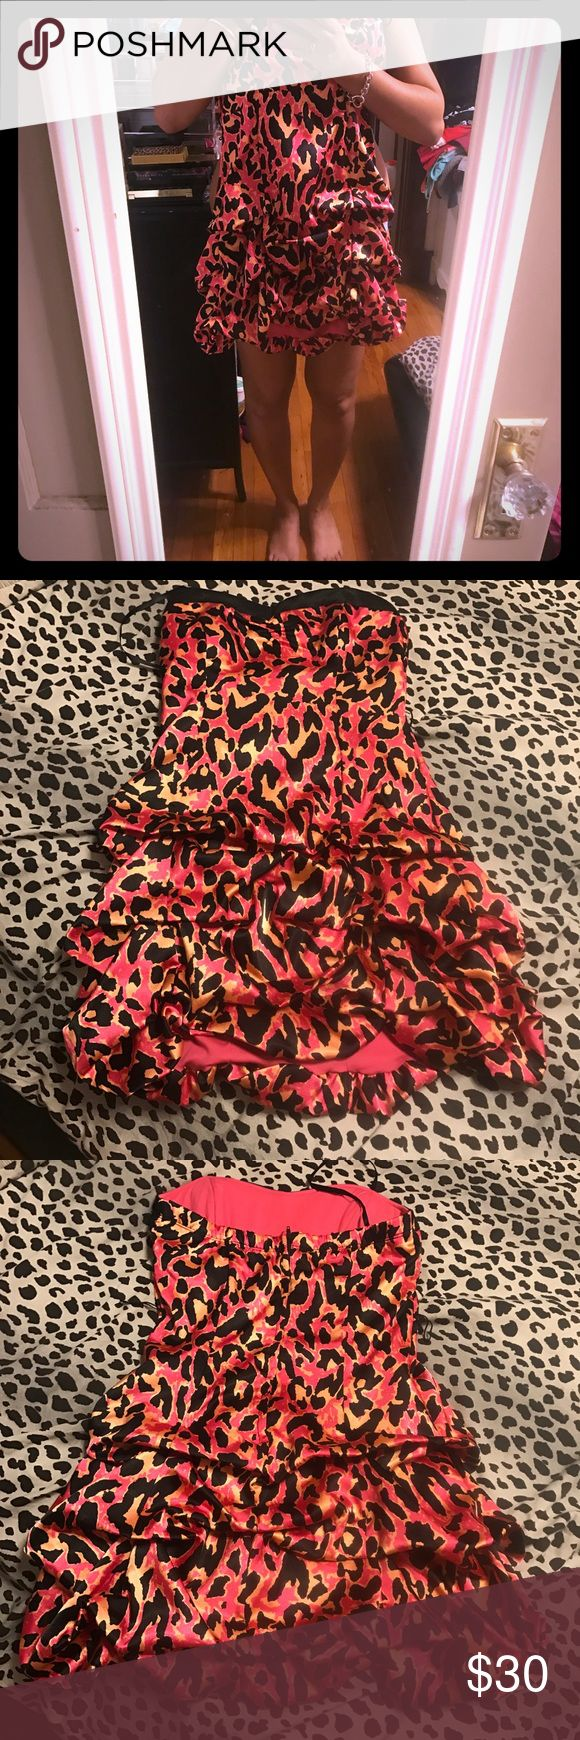 Leopard party dress Pink leopard party dress. Worn once for my birthday. Super cute and makes a statement size 9 Deb Dresses Mini